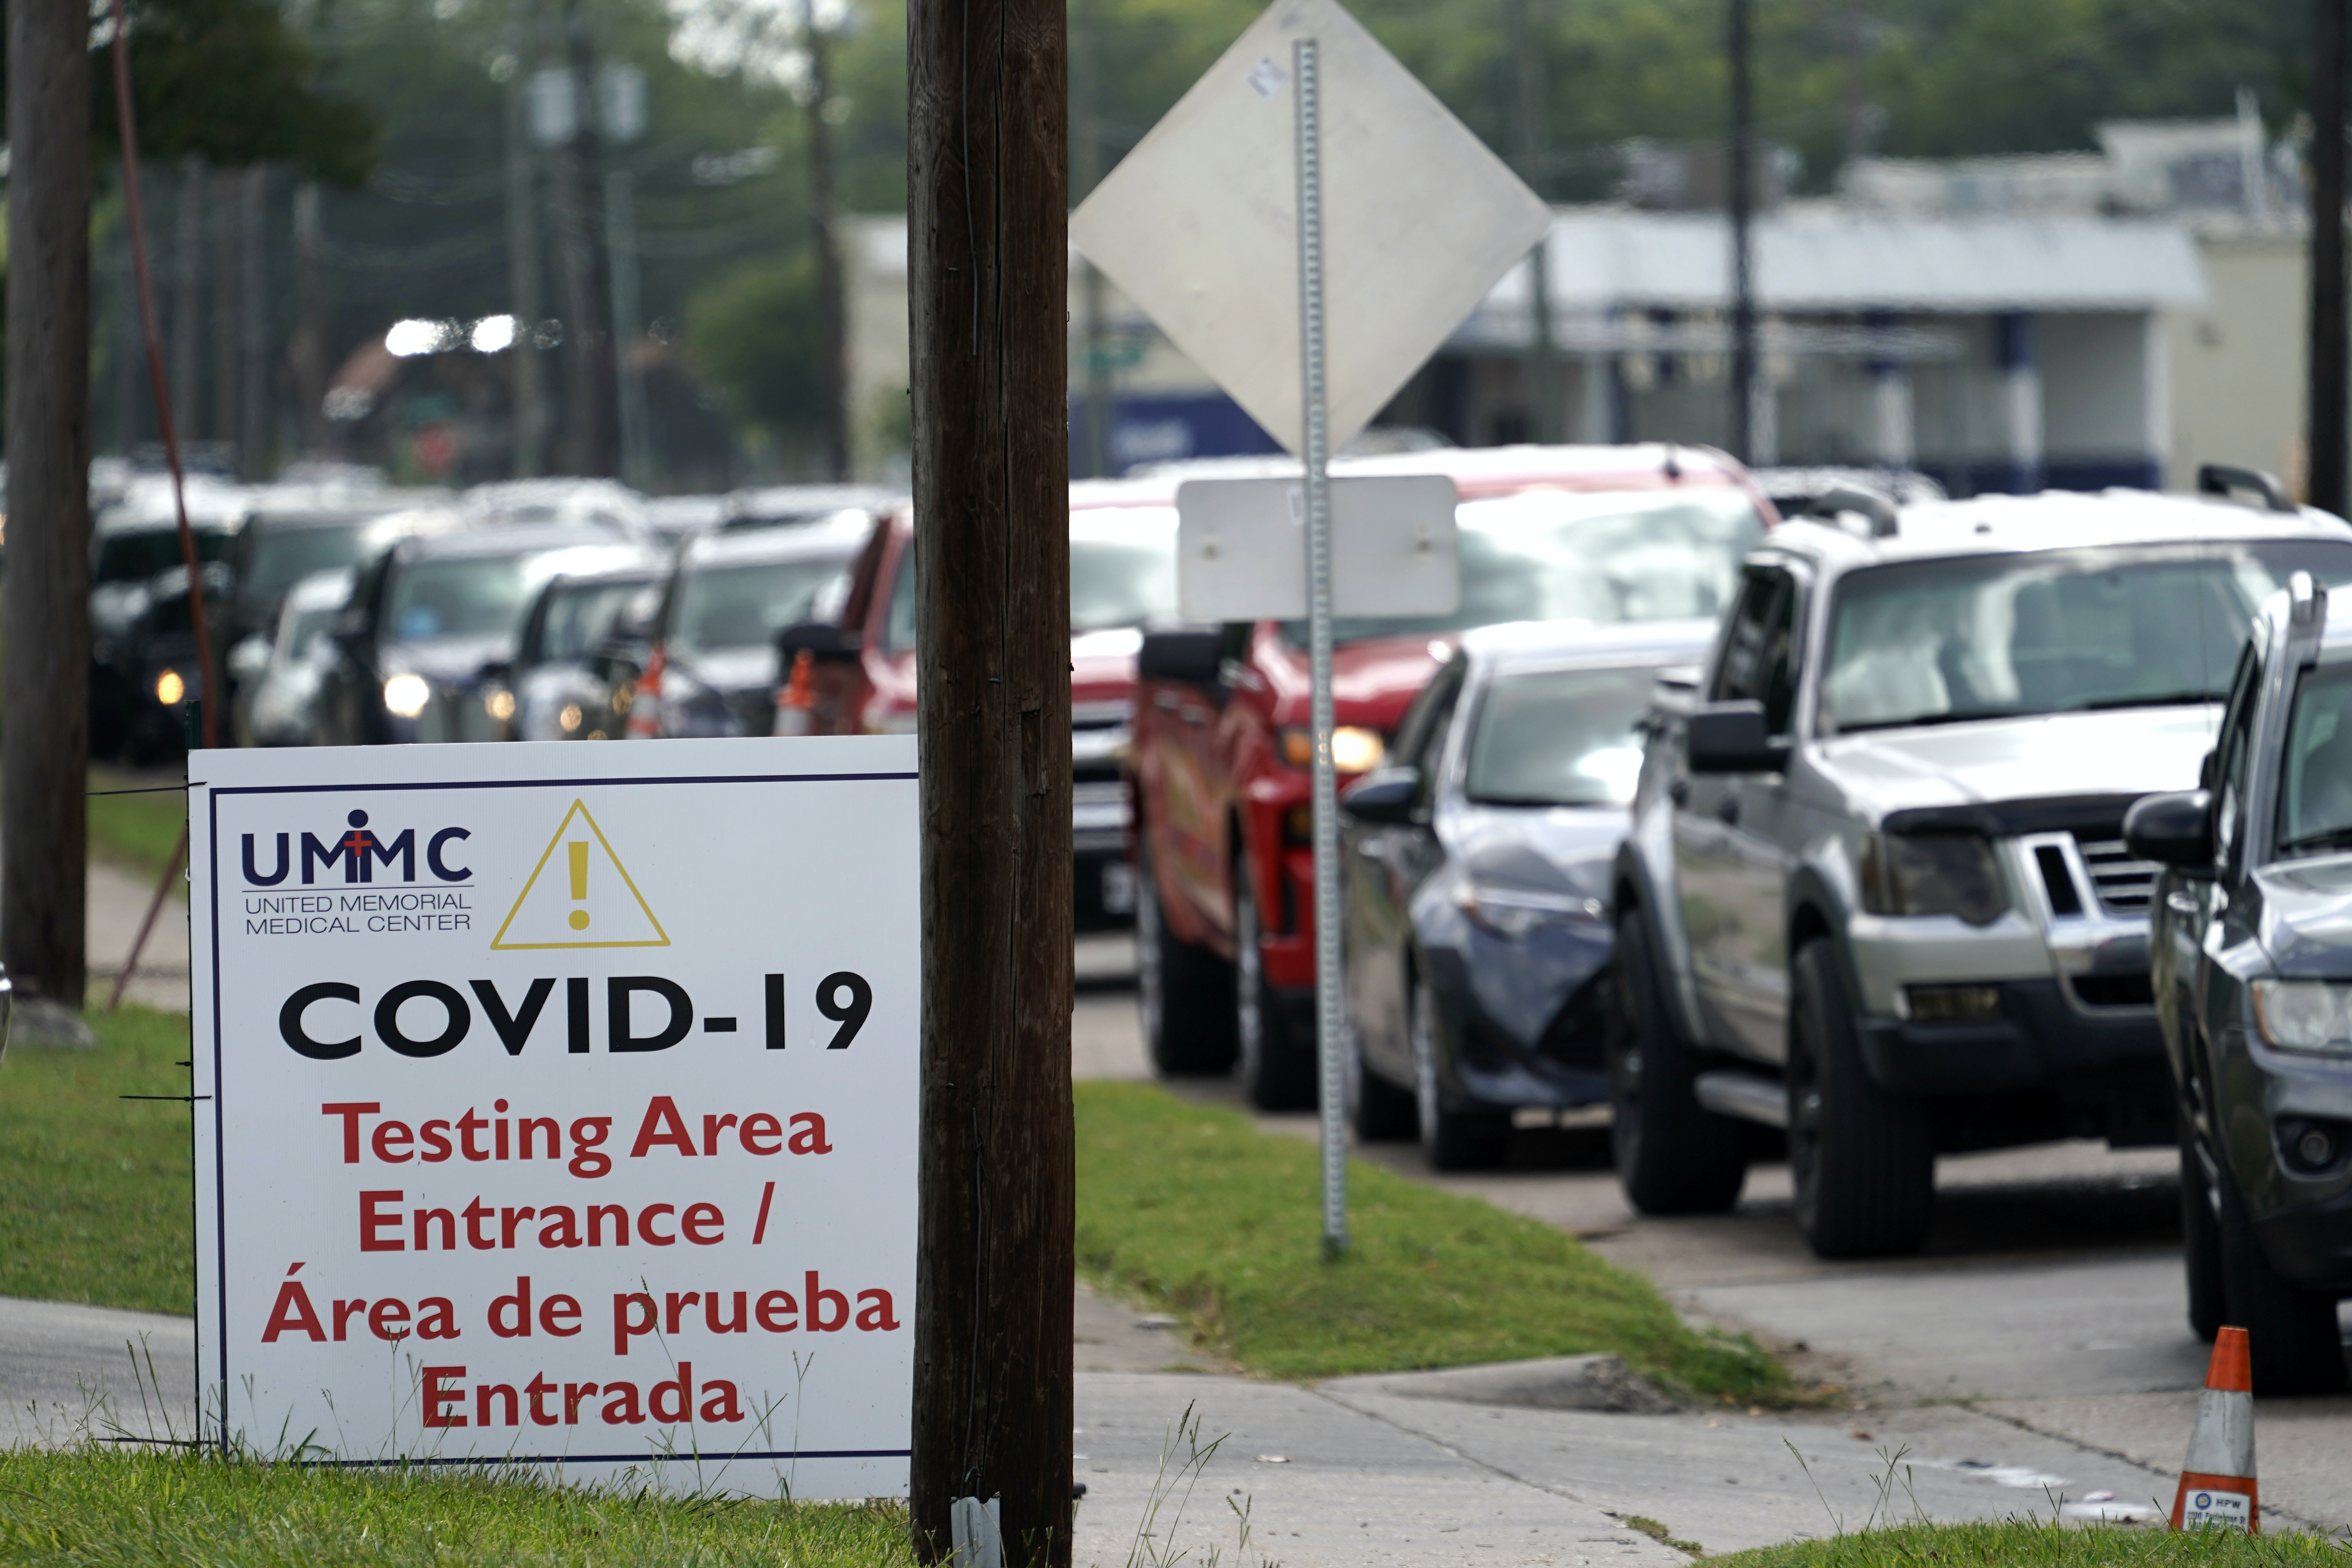 A line of people waiting in cars in front of a sign for COVID-19 testing.